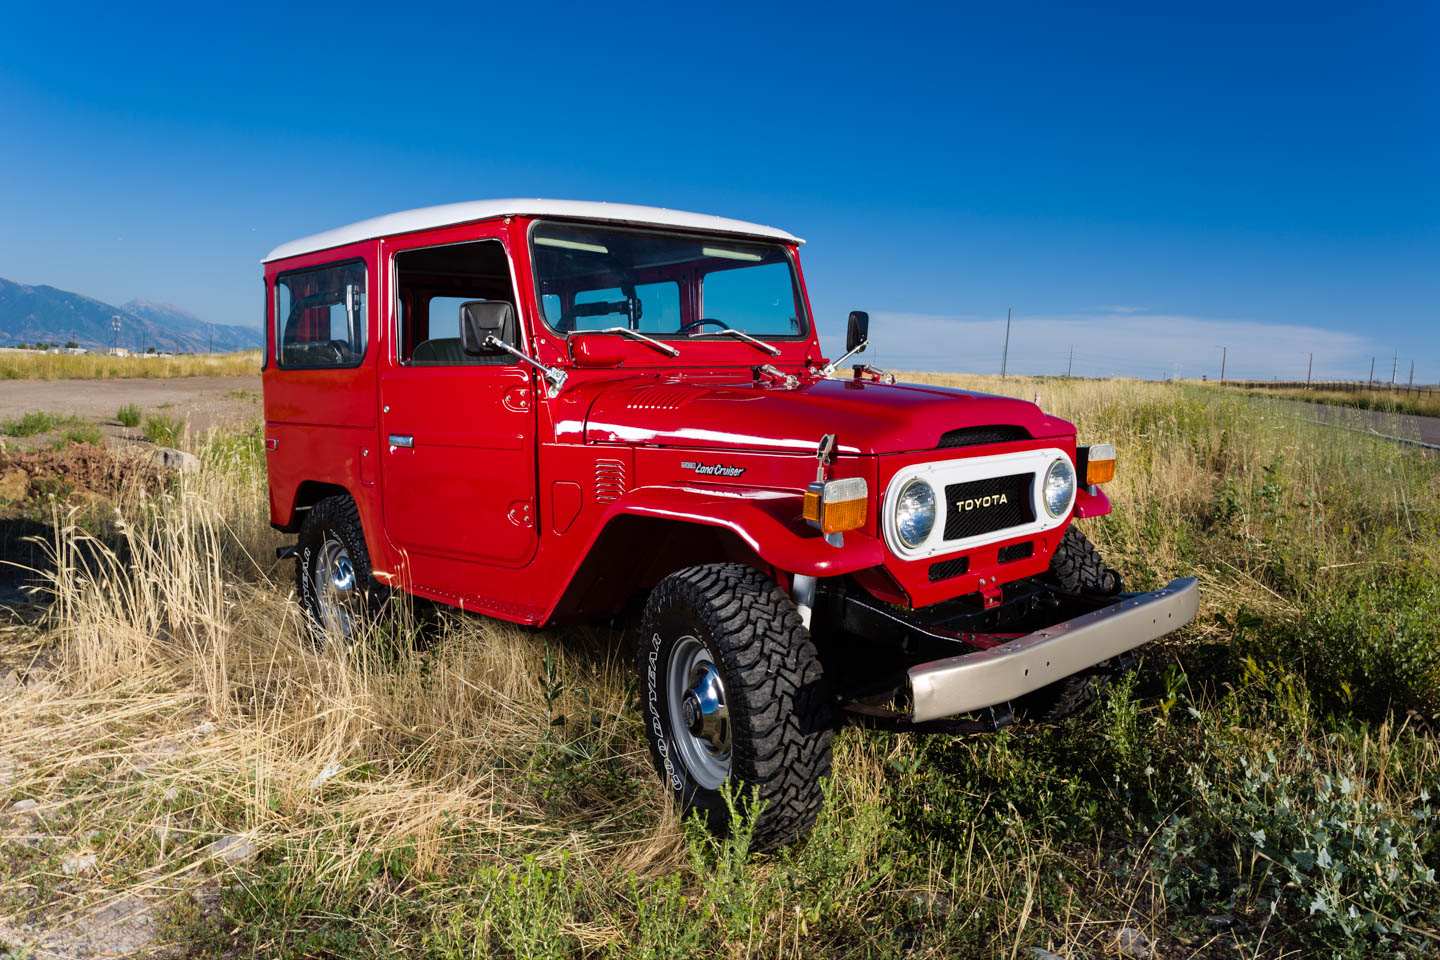 Red Toyota Land Cruiser